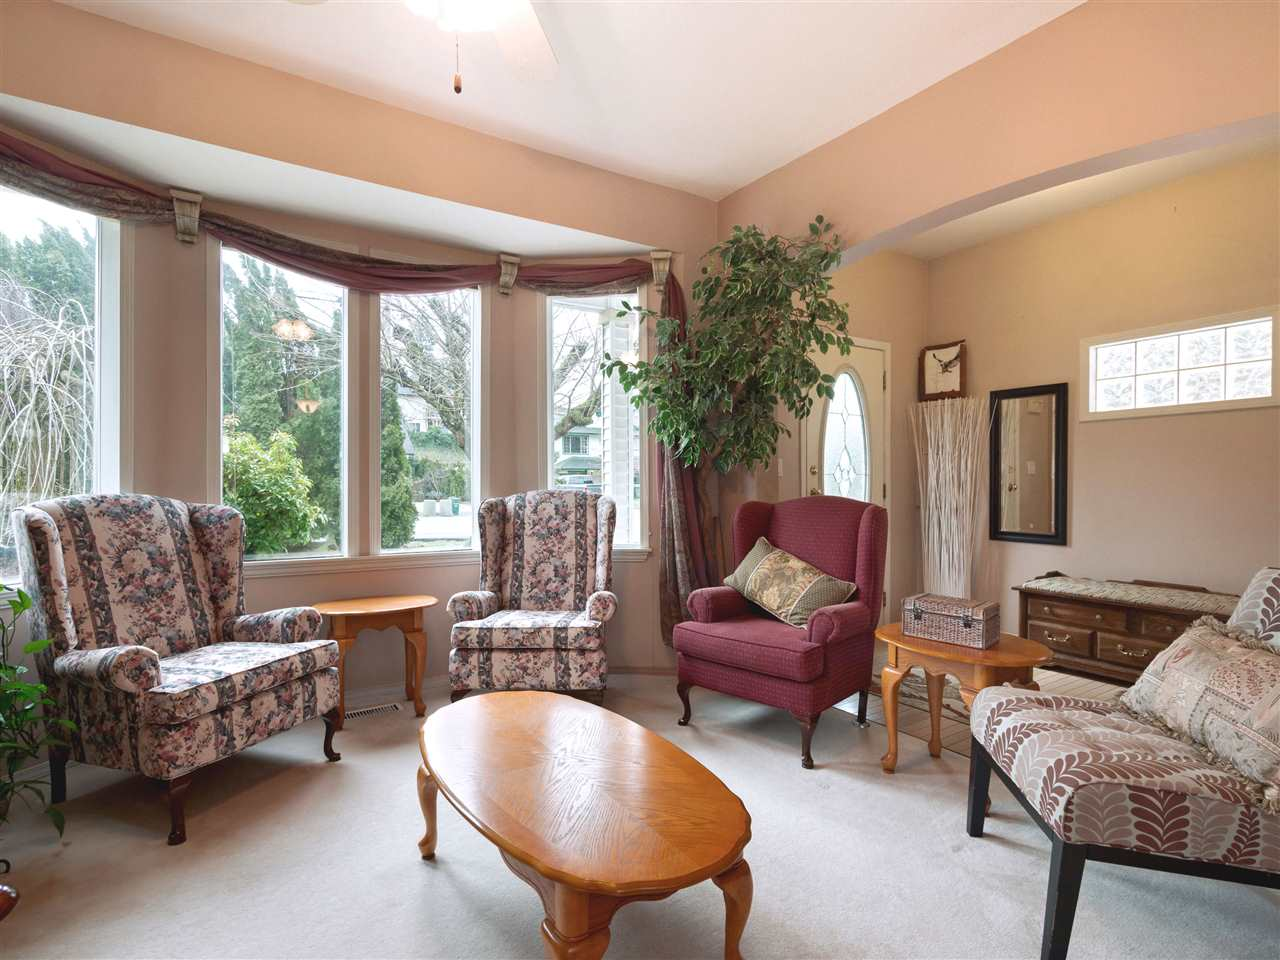 Photo 9: Photos: 33121 CHERRY Avenue in Mission: Mission BC House for sale : MLS® # R2236876